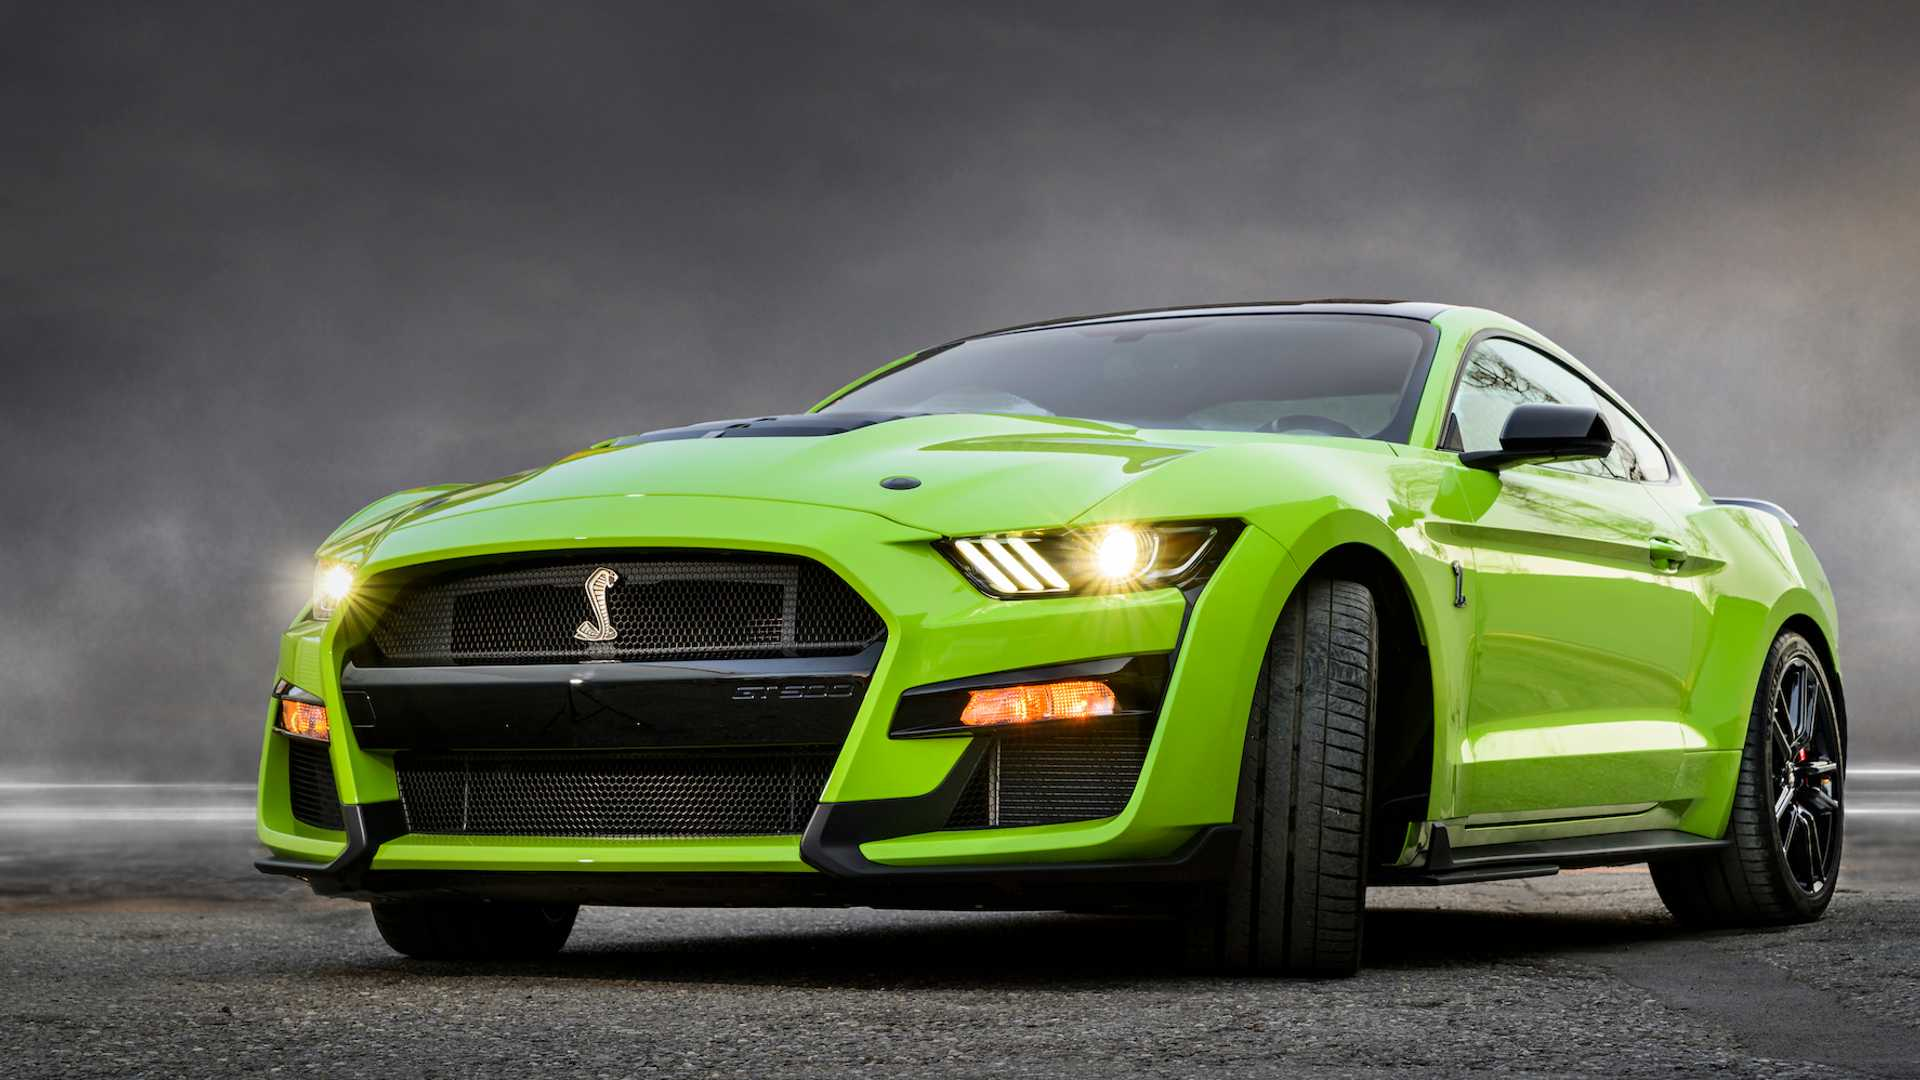 Ford-Mustang-Shelby-GT500-by-Peicher-US-Cars-1